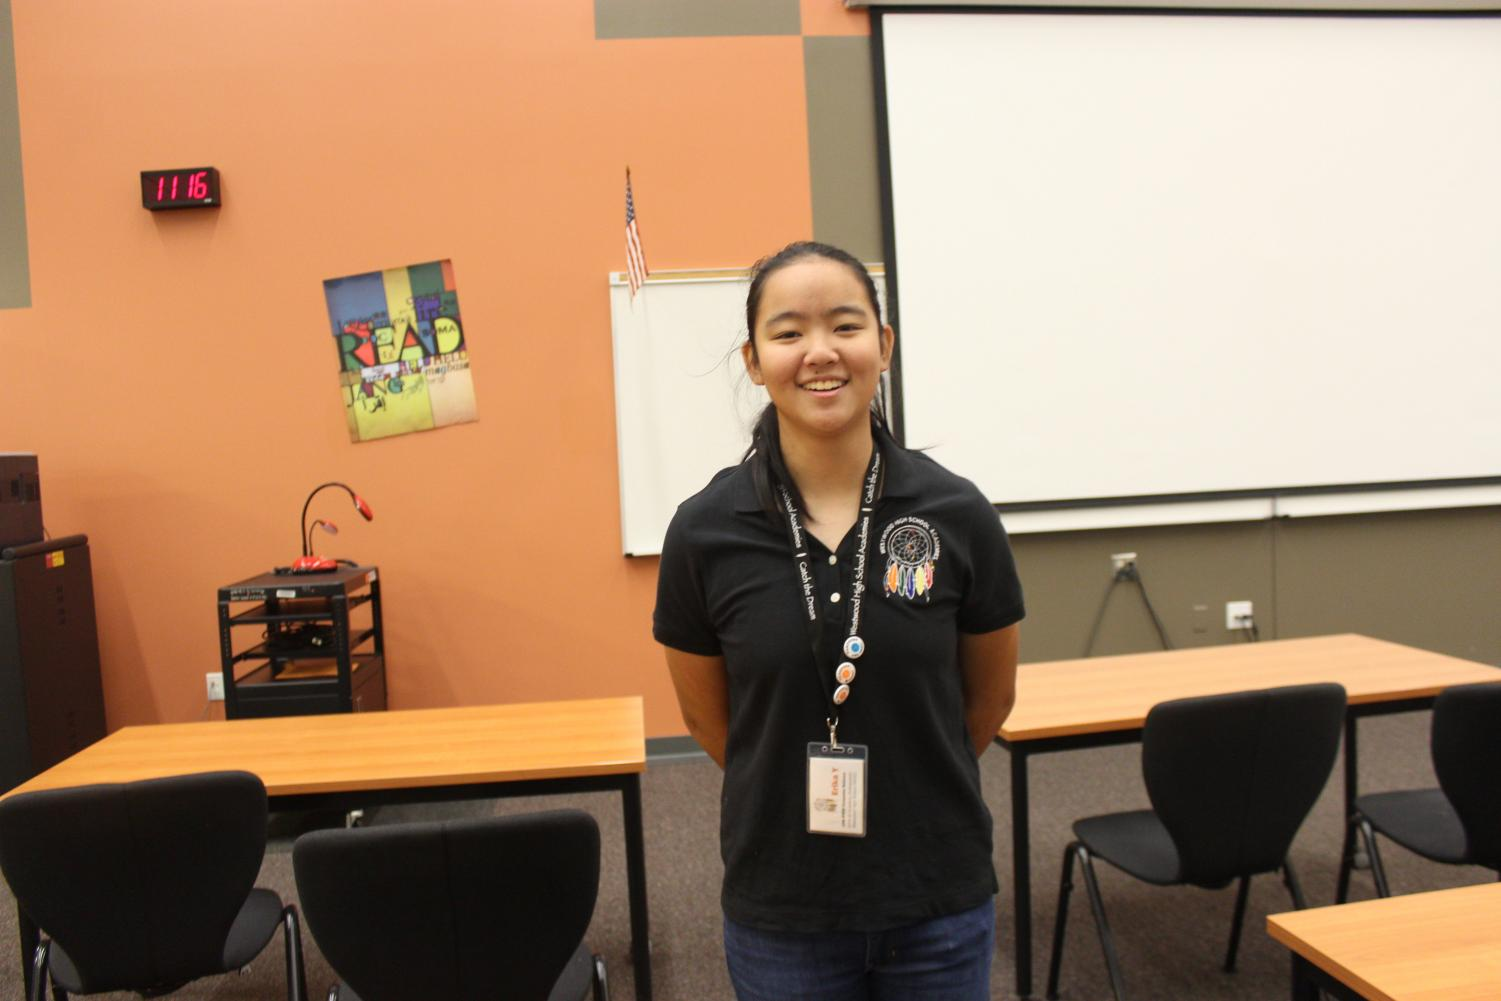 Erica+Yao+%2721%2C+Governing+Team+member+of+the+STEM+academy%2C+smiles+after+a+successful+8th+grade+day.++All+the+presentations+ran+smoothly+since+the+8th+graders+sat+quietly+and+listened.